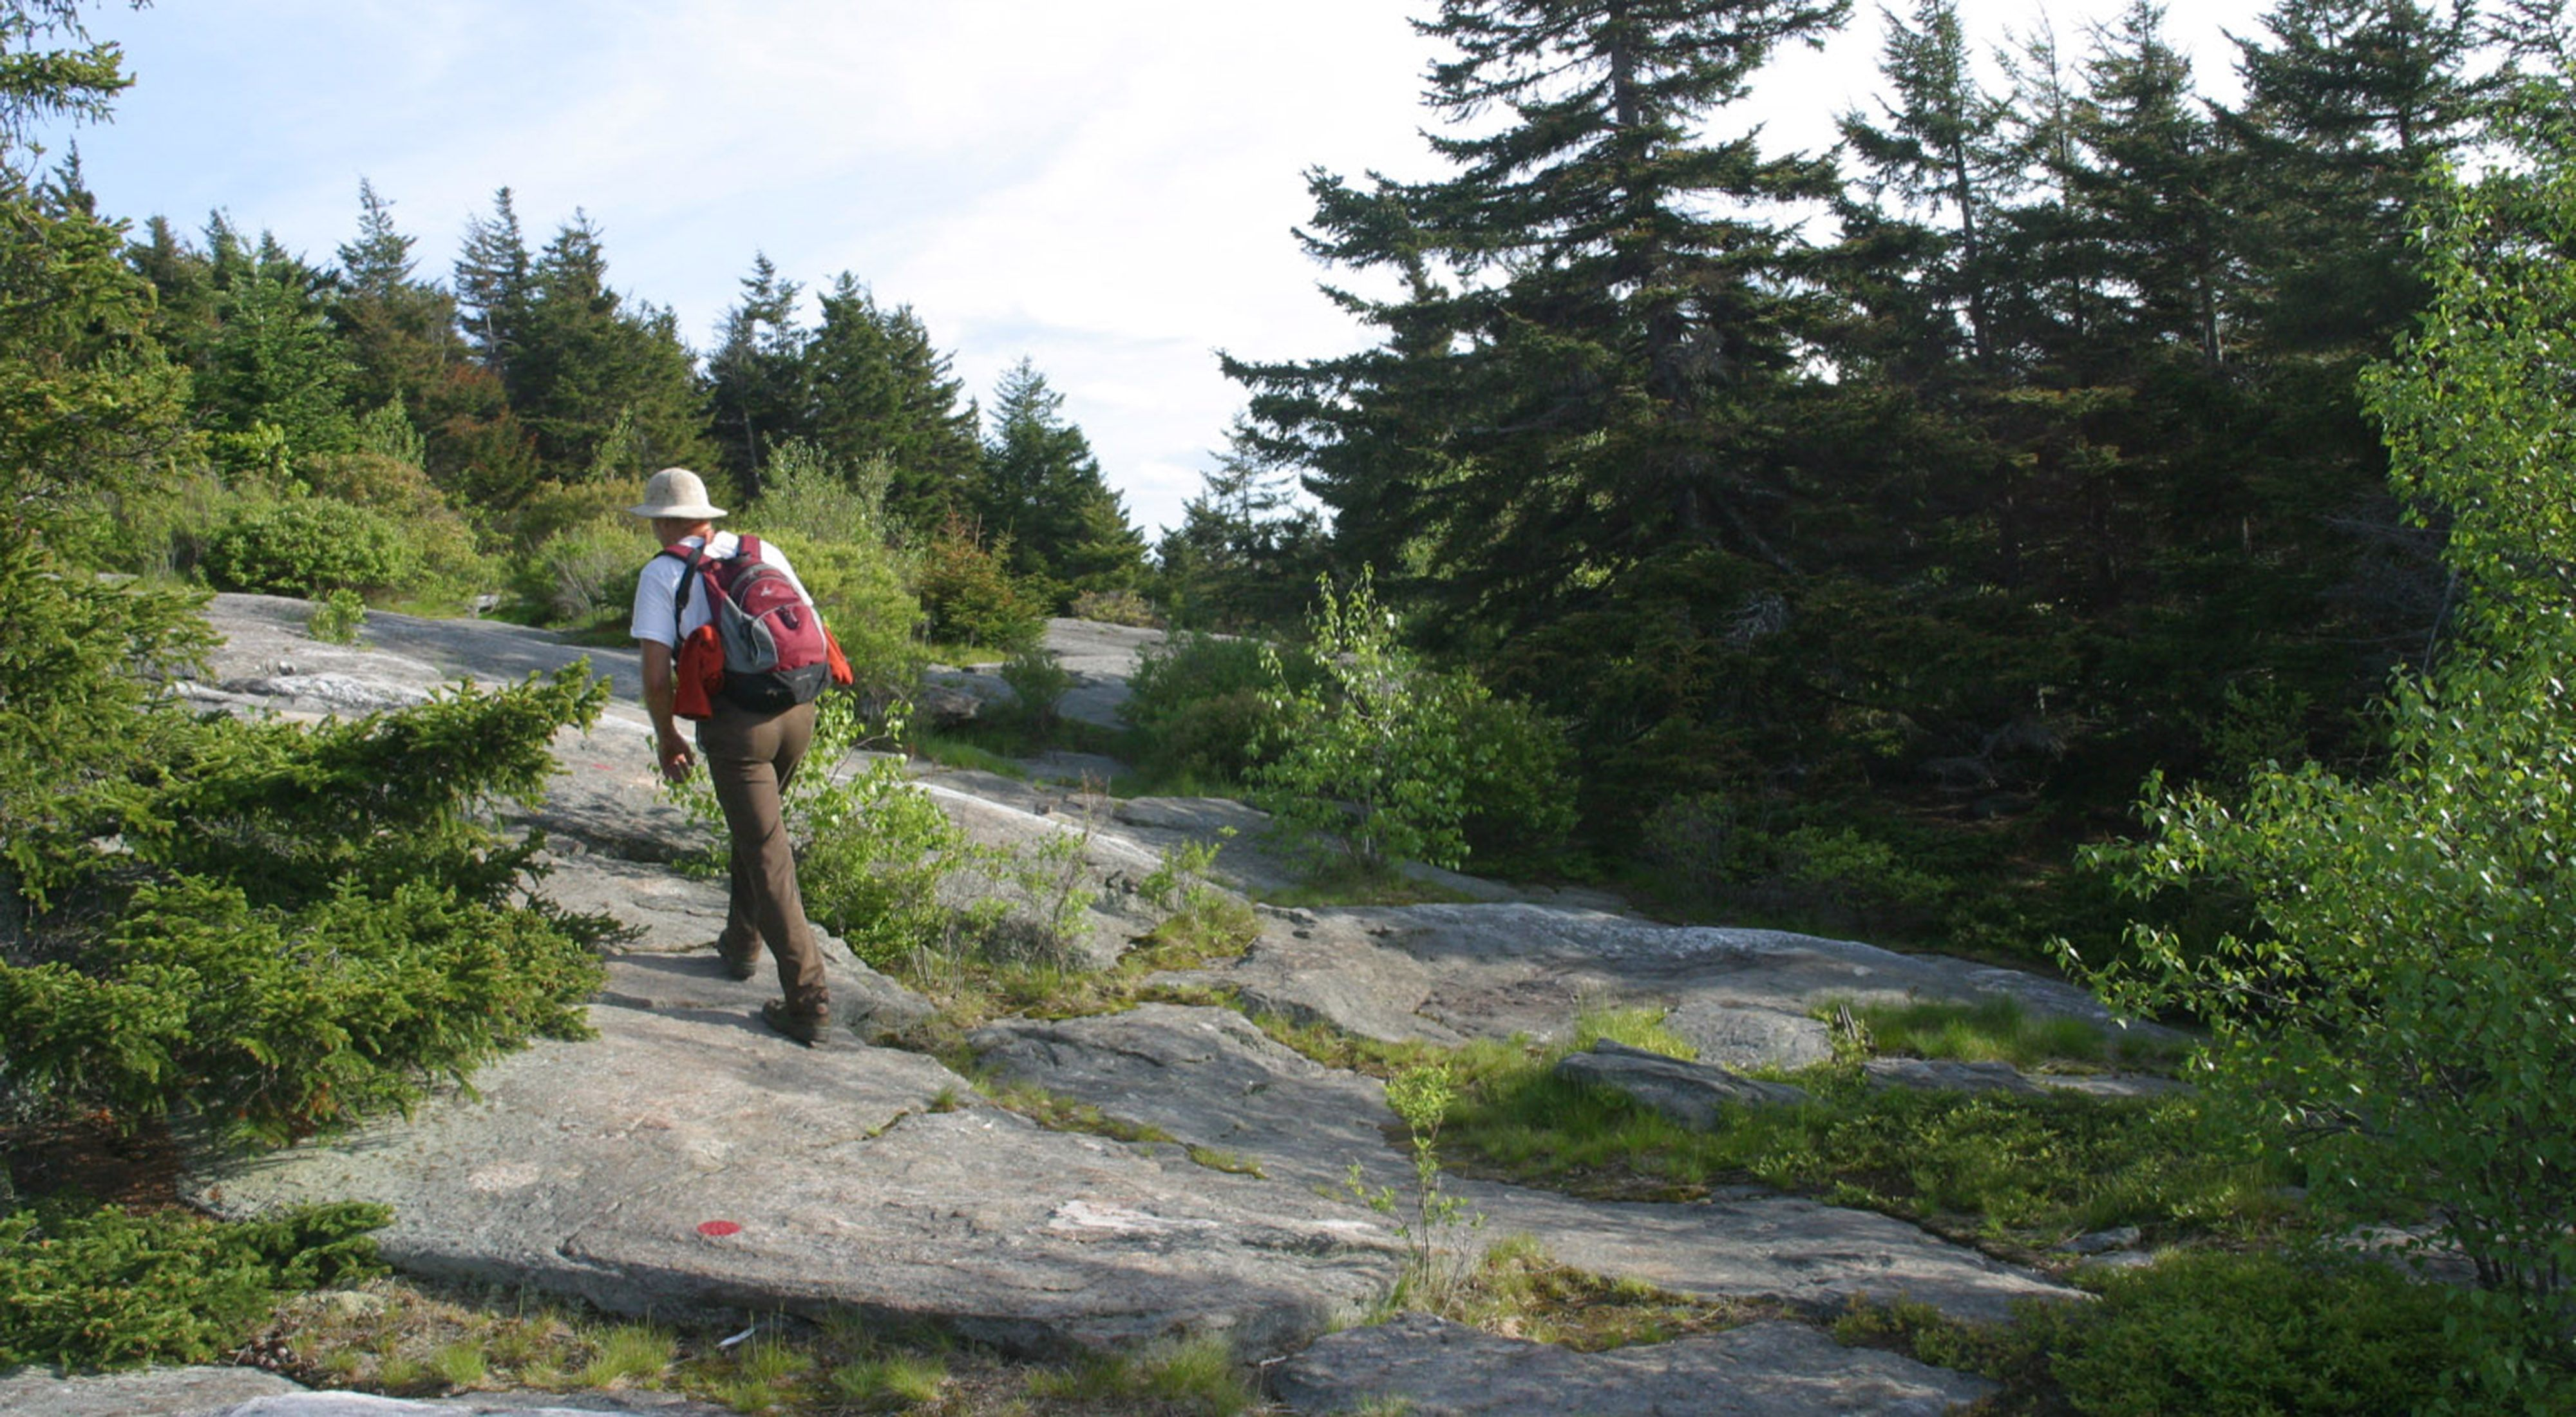 A hiker makes his way to the summit of Pack Monadnock at the Joanne Bass Bross Preserve in Peterborough, New Hampshire